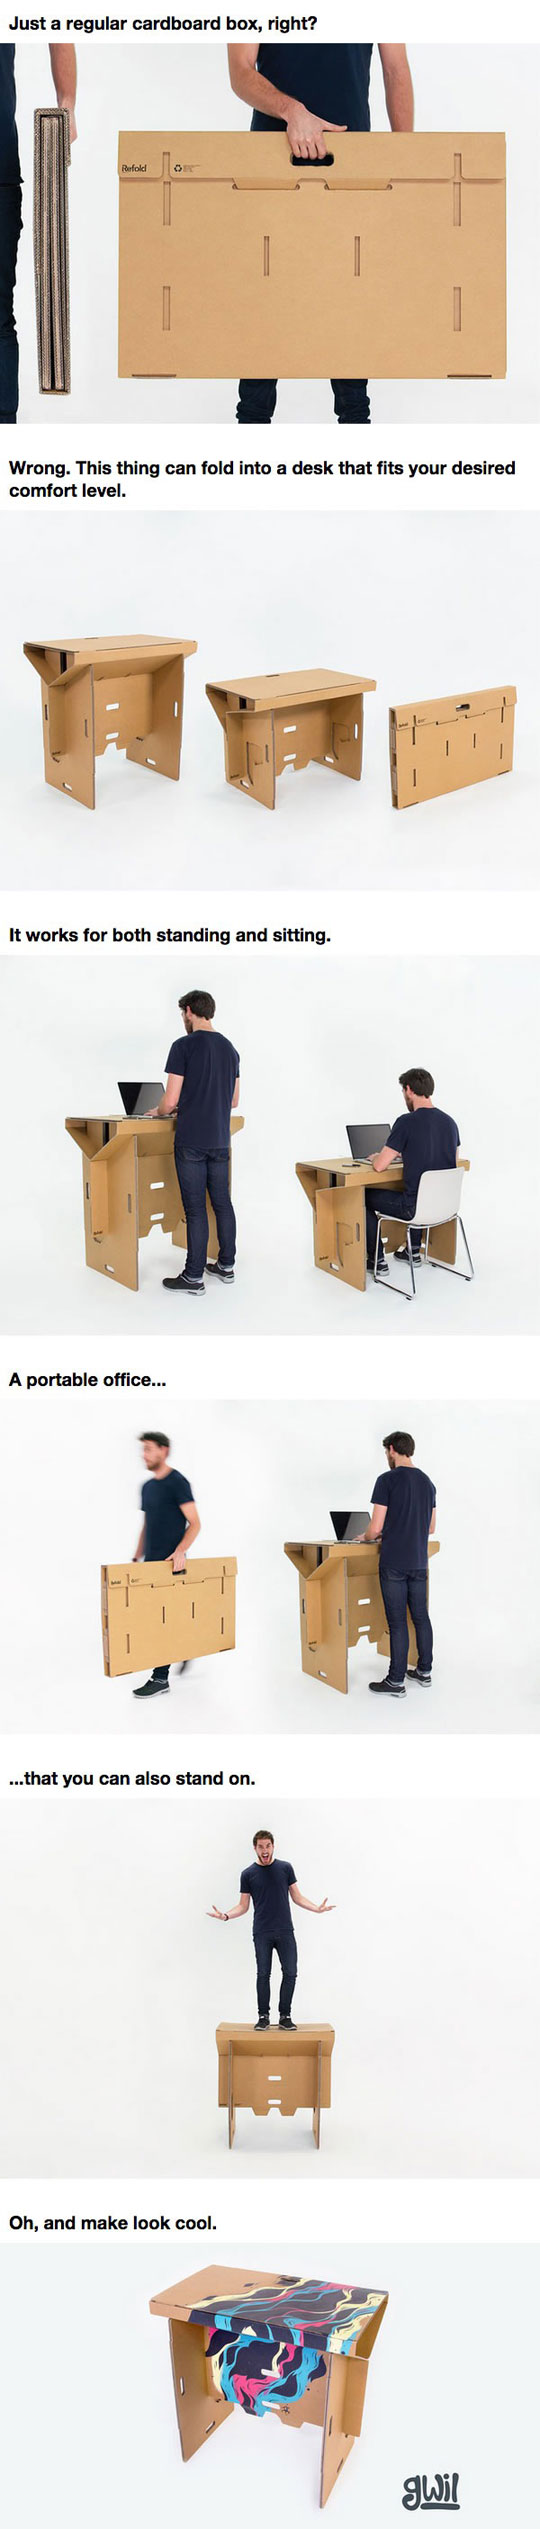 cardboard-box-desk-design